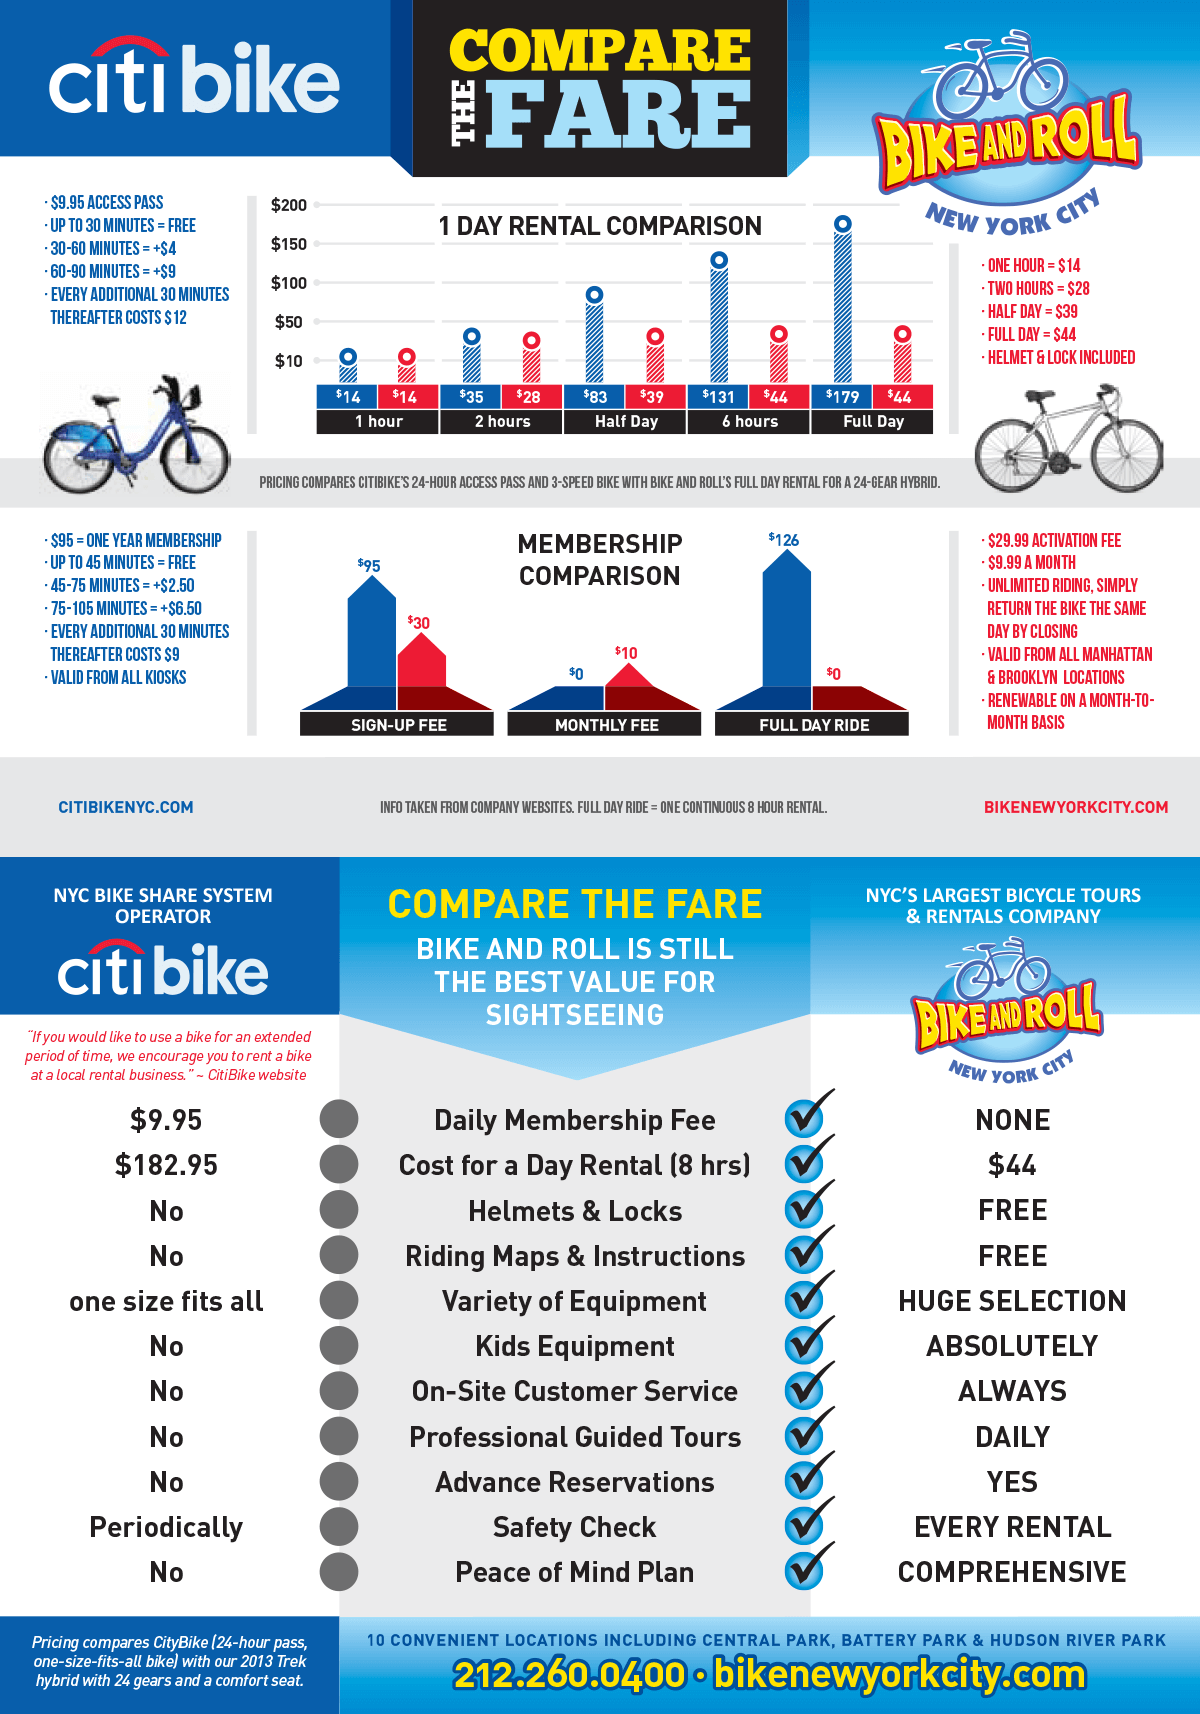 Bike and Roll vs Citibike